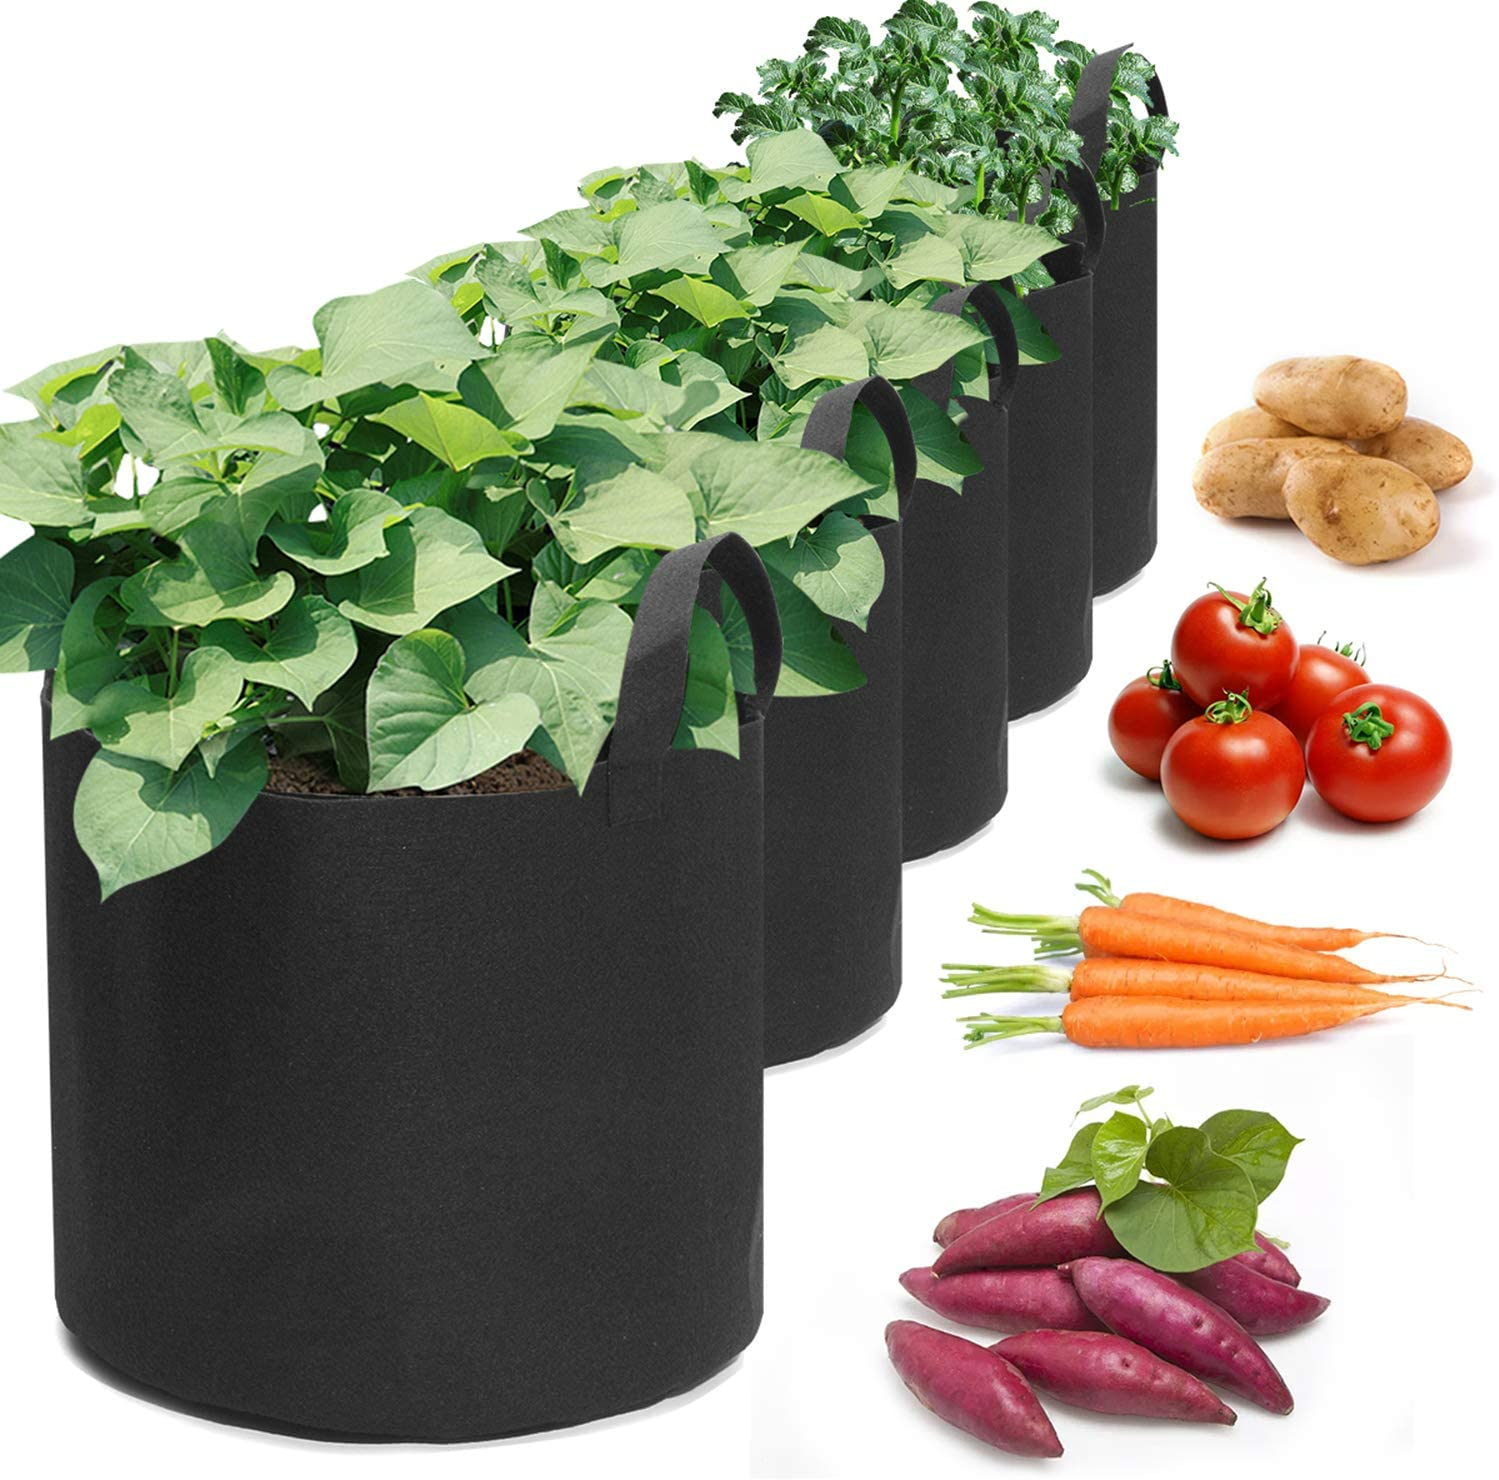 king do way Vegetable Grow Bags,5 Pack Plant Grow Bags Breathable Garden Growing Bag Planting Tomato Fabric Pots Garden Planter Container with Strap Handles for Home,Potato,Carrot Planter Bags 3Gallon